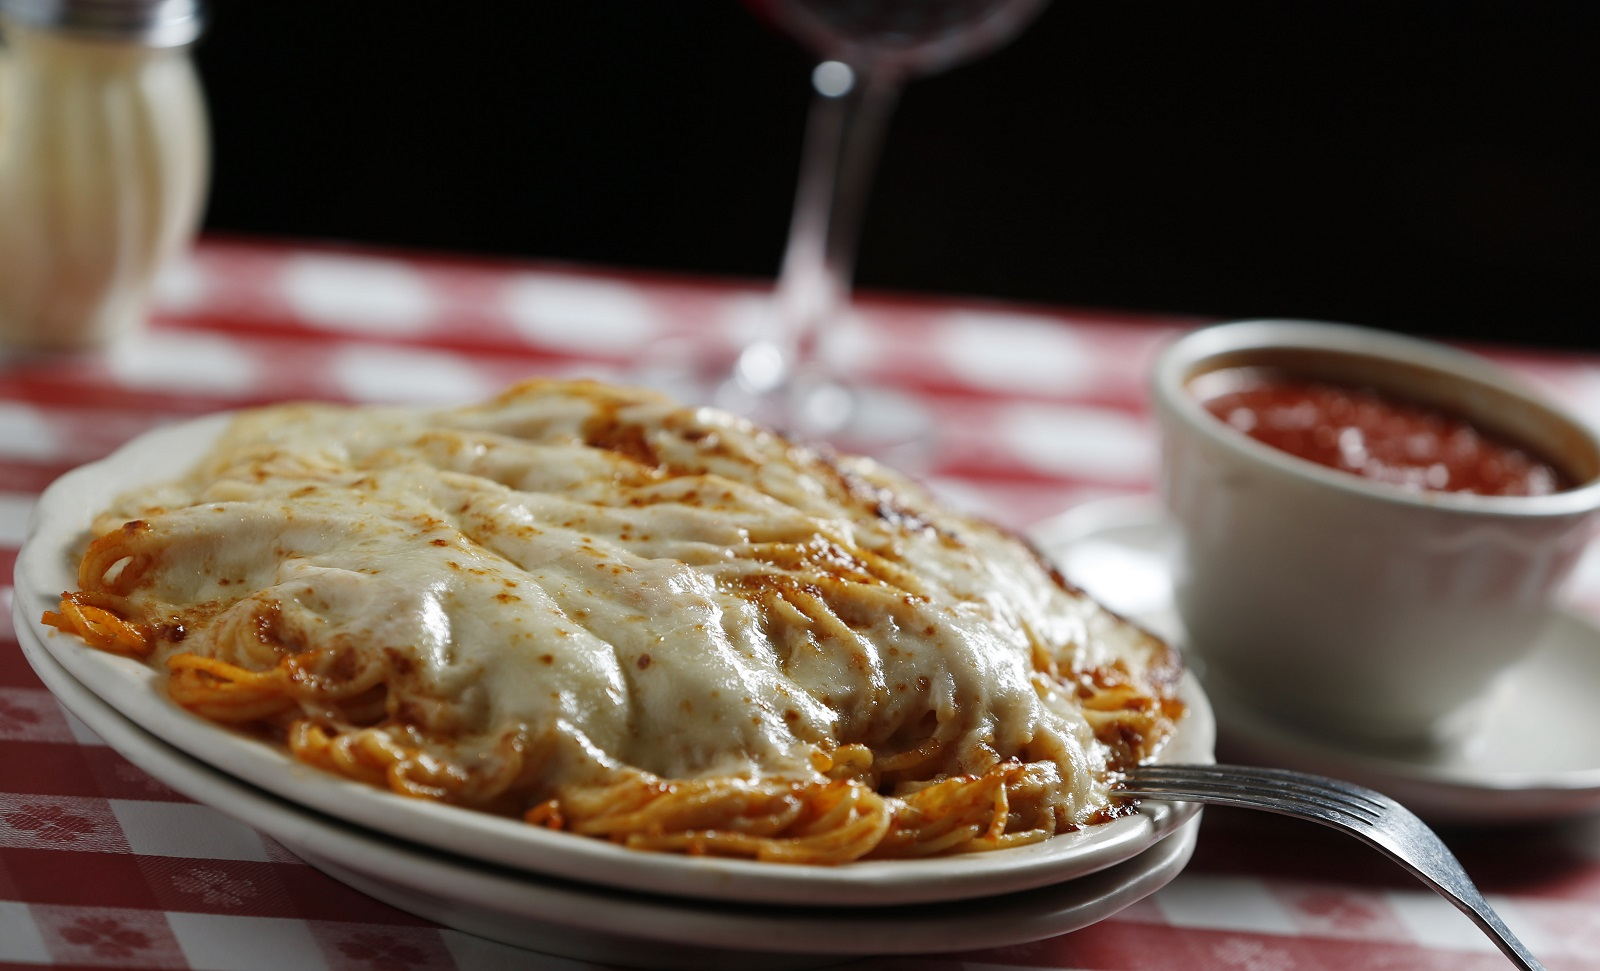 The spaghetti parm was invented at Chef's. (Sharon Cantillon/News file photo)